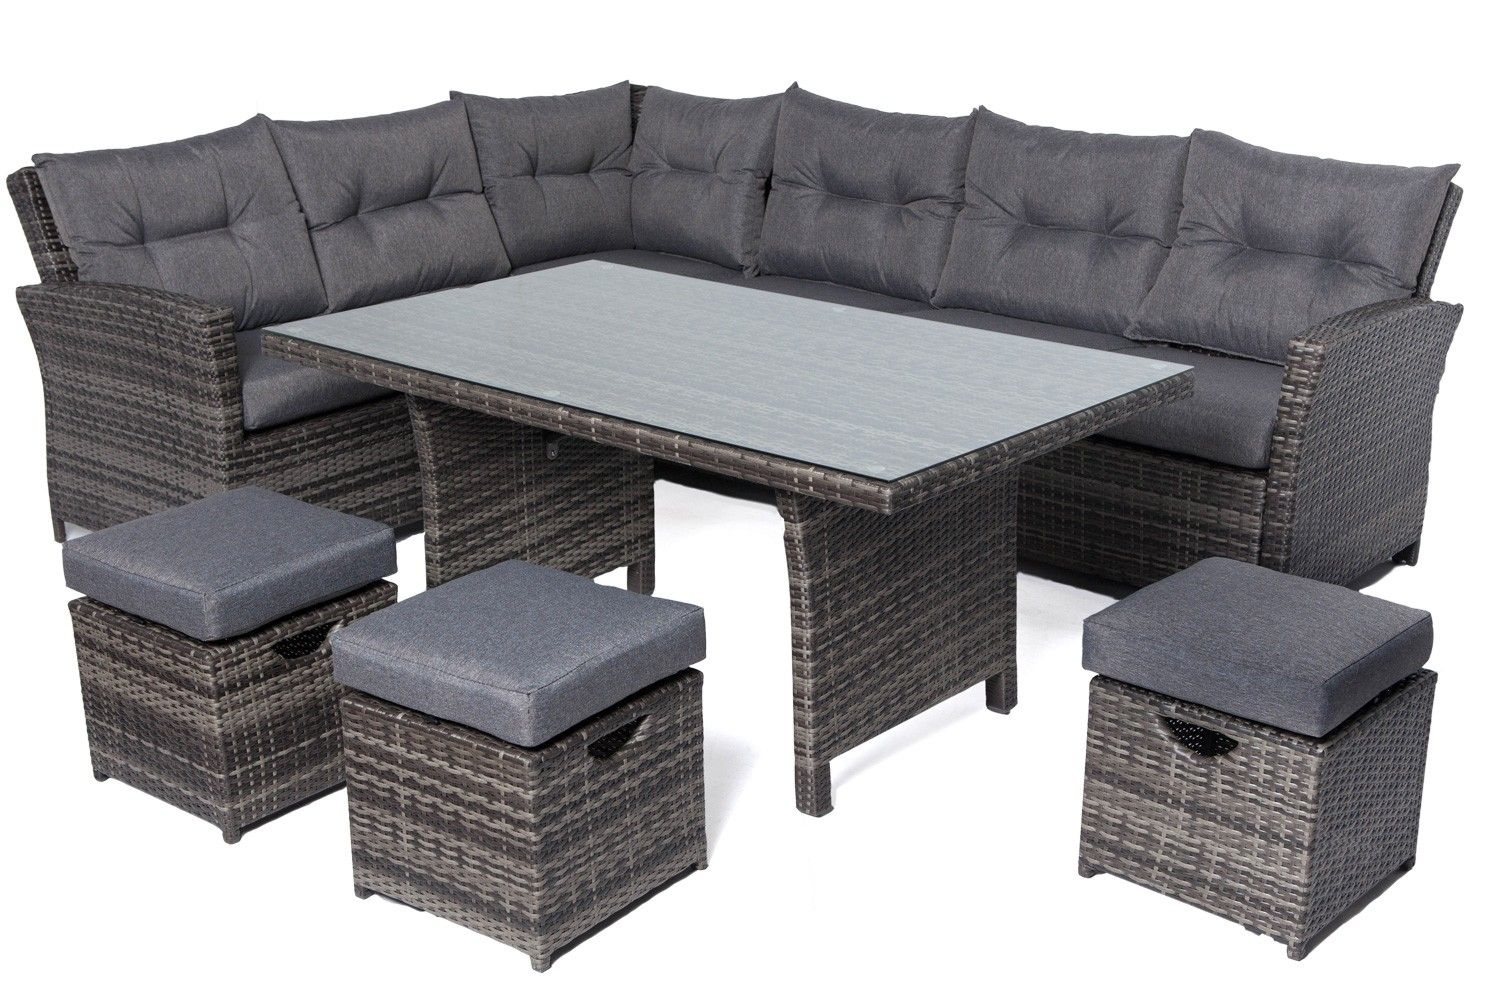 Rattan Eckbank Outdoor Mayfair 6 Seater Rattan Corner Dining Set Grey Garden Rattan